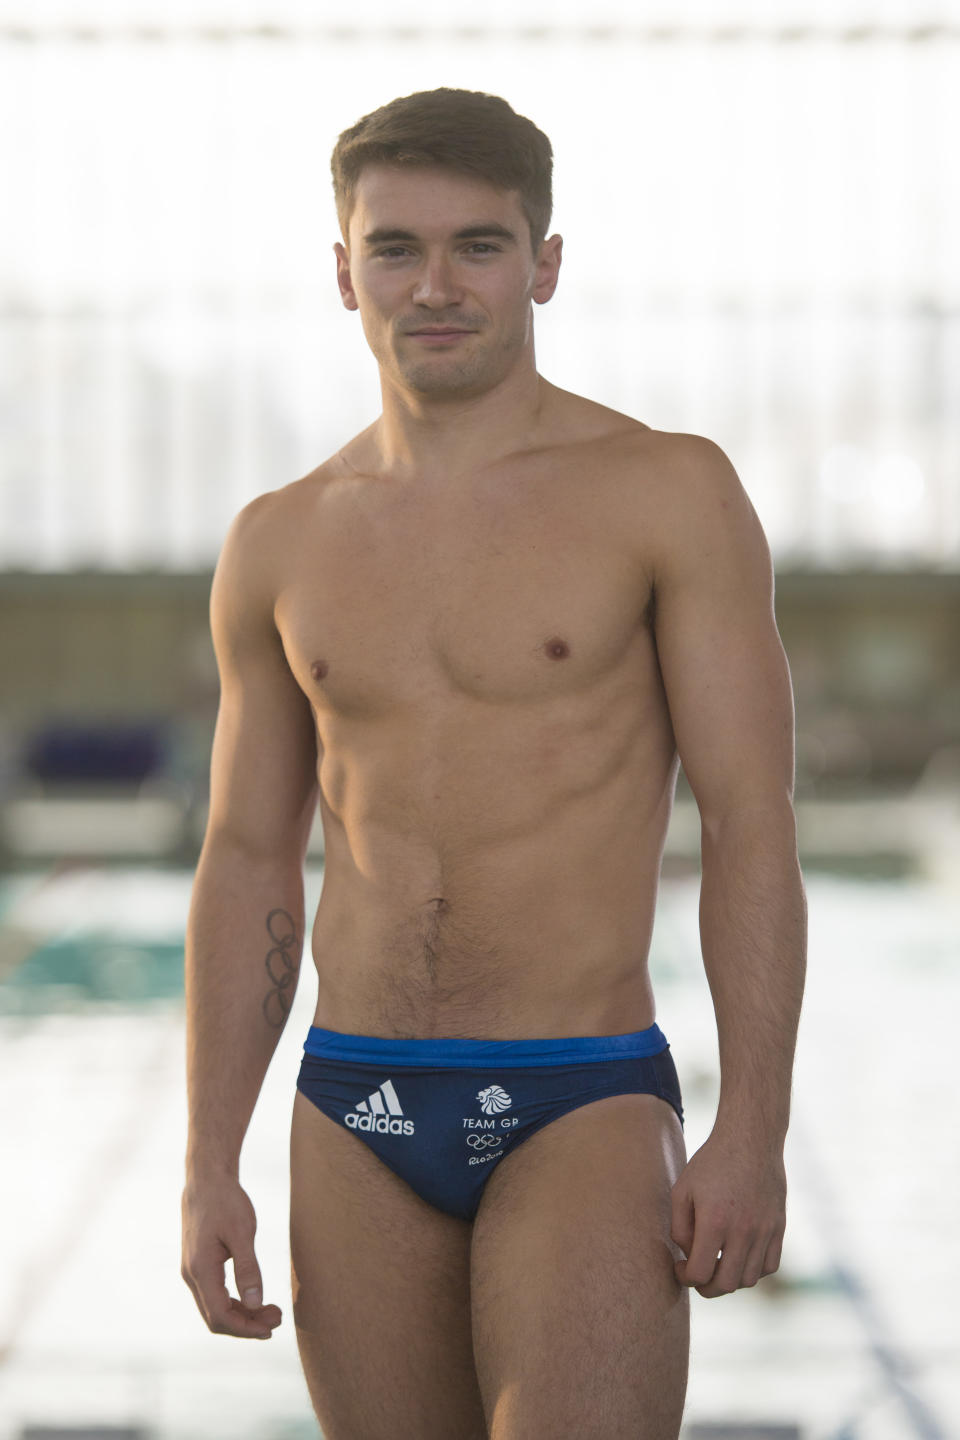 Goodfellow is gunning for gold in Tokyo this summer alongside diving partner Jack Laugher